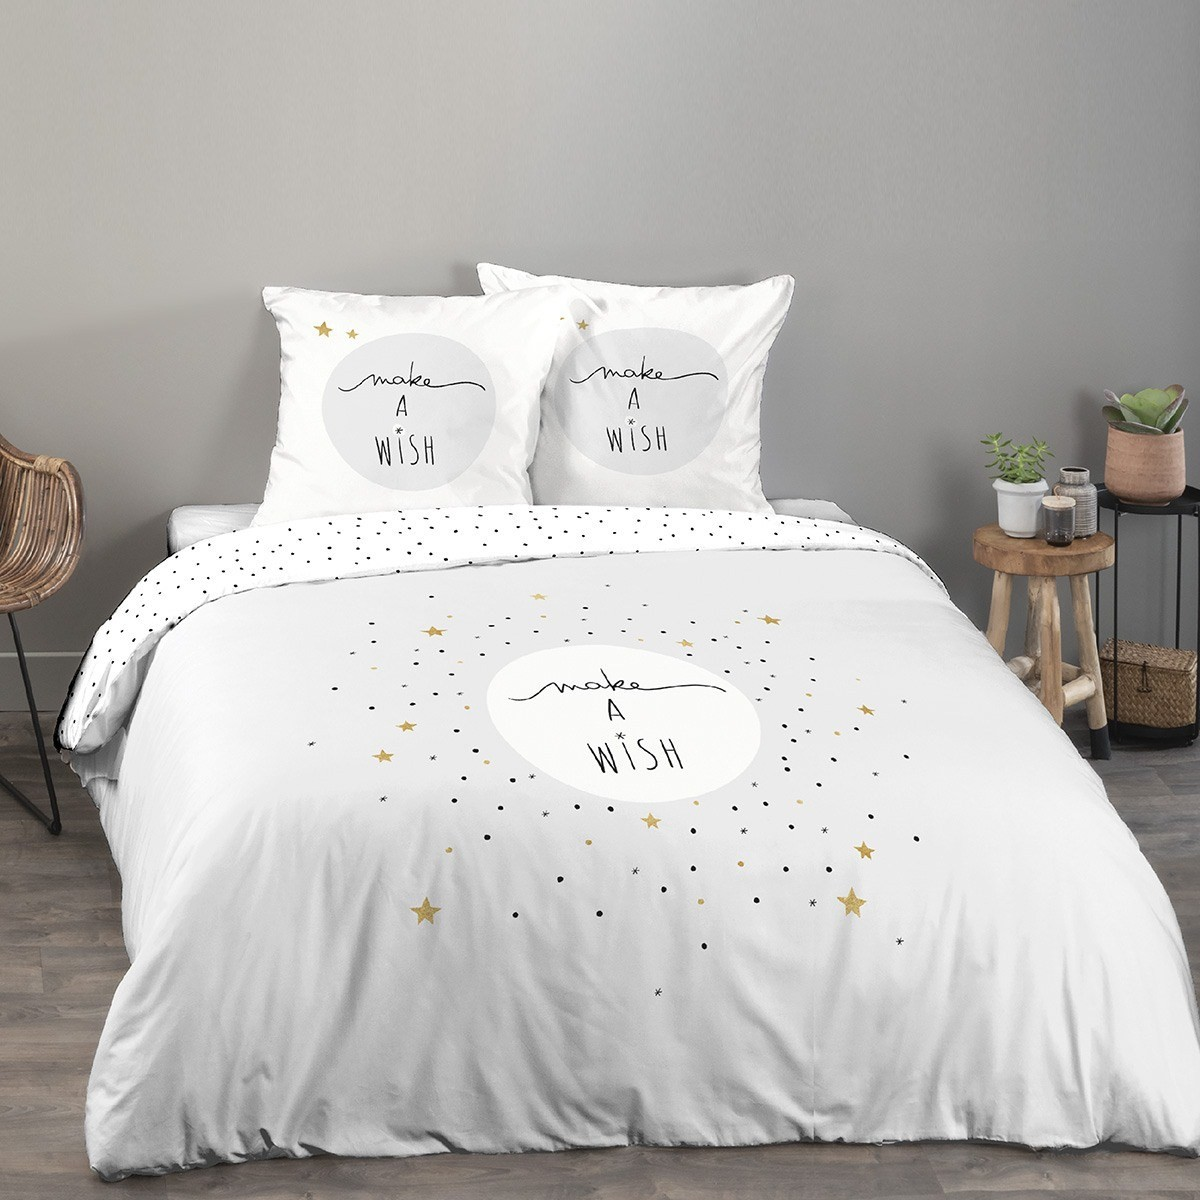 Housse de couette 220x240 Make a wish gris